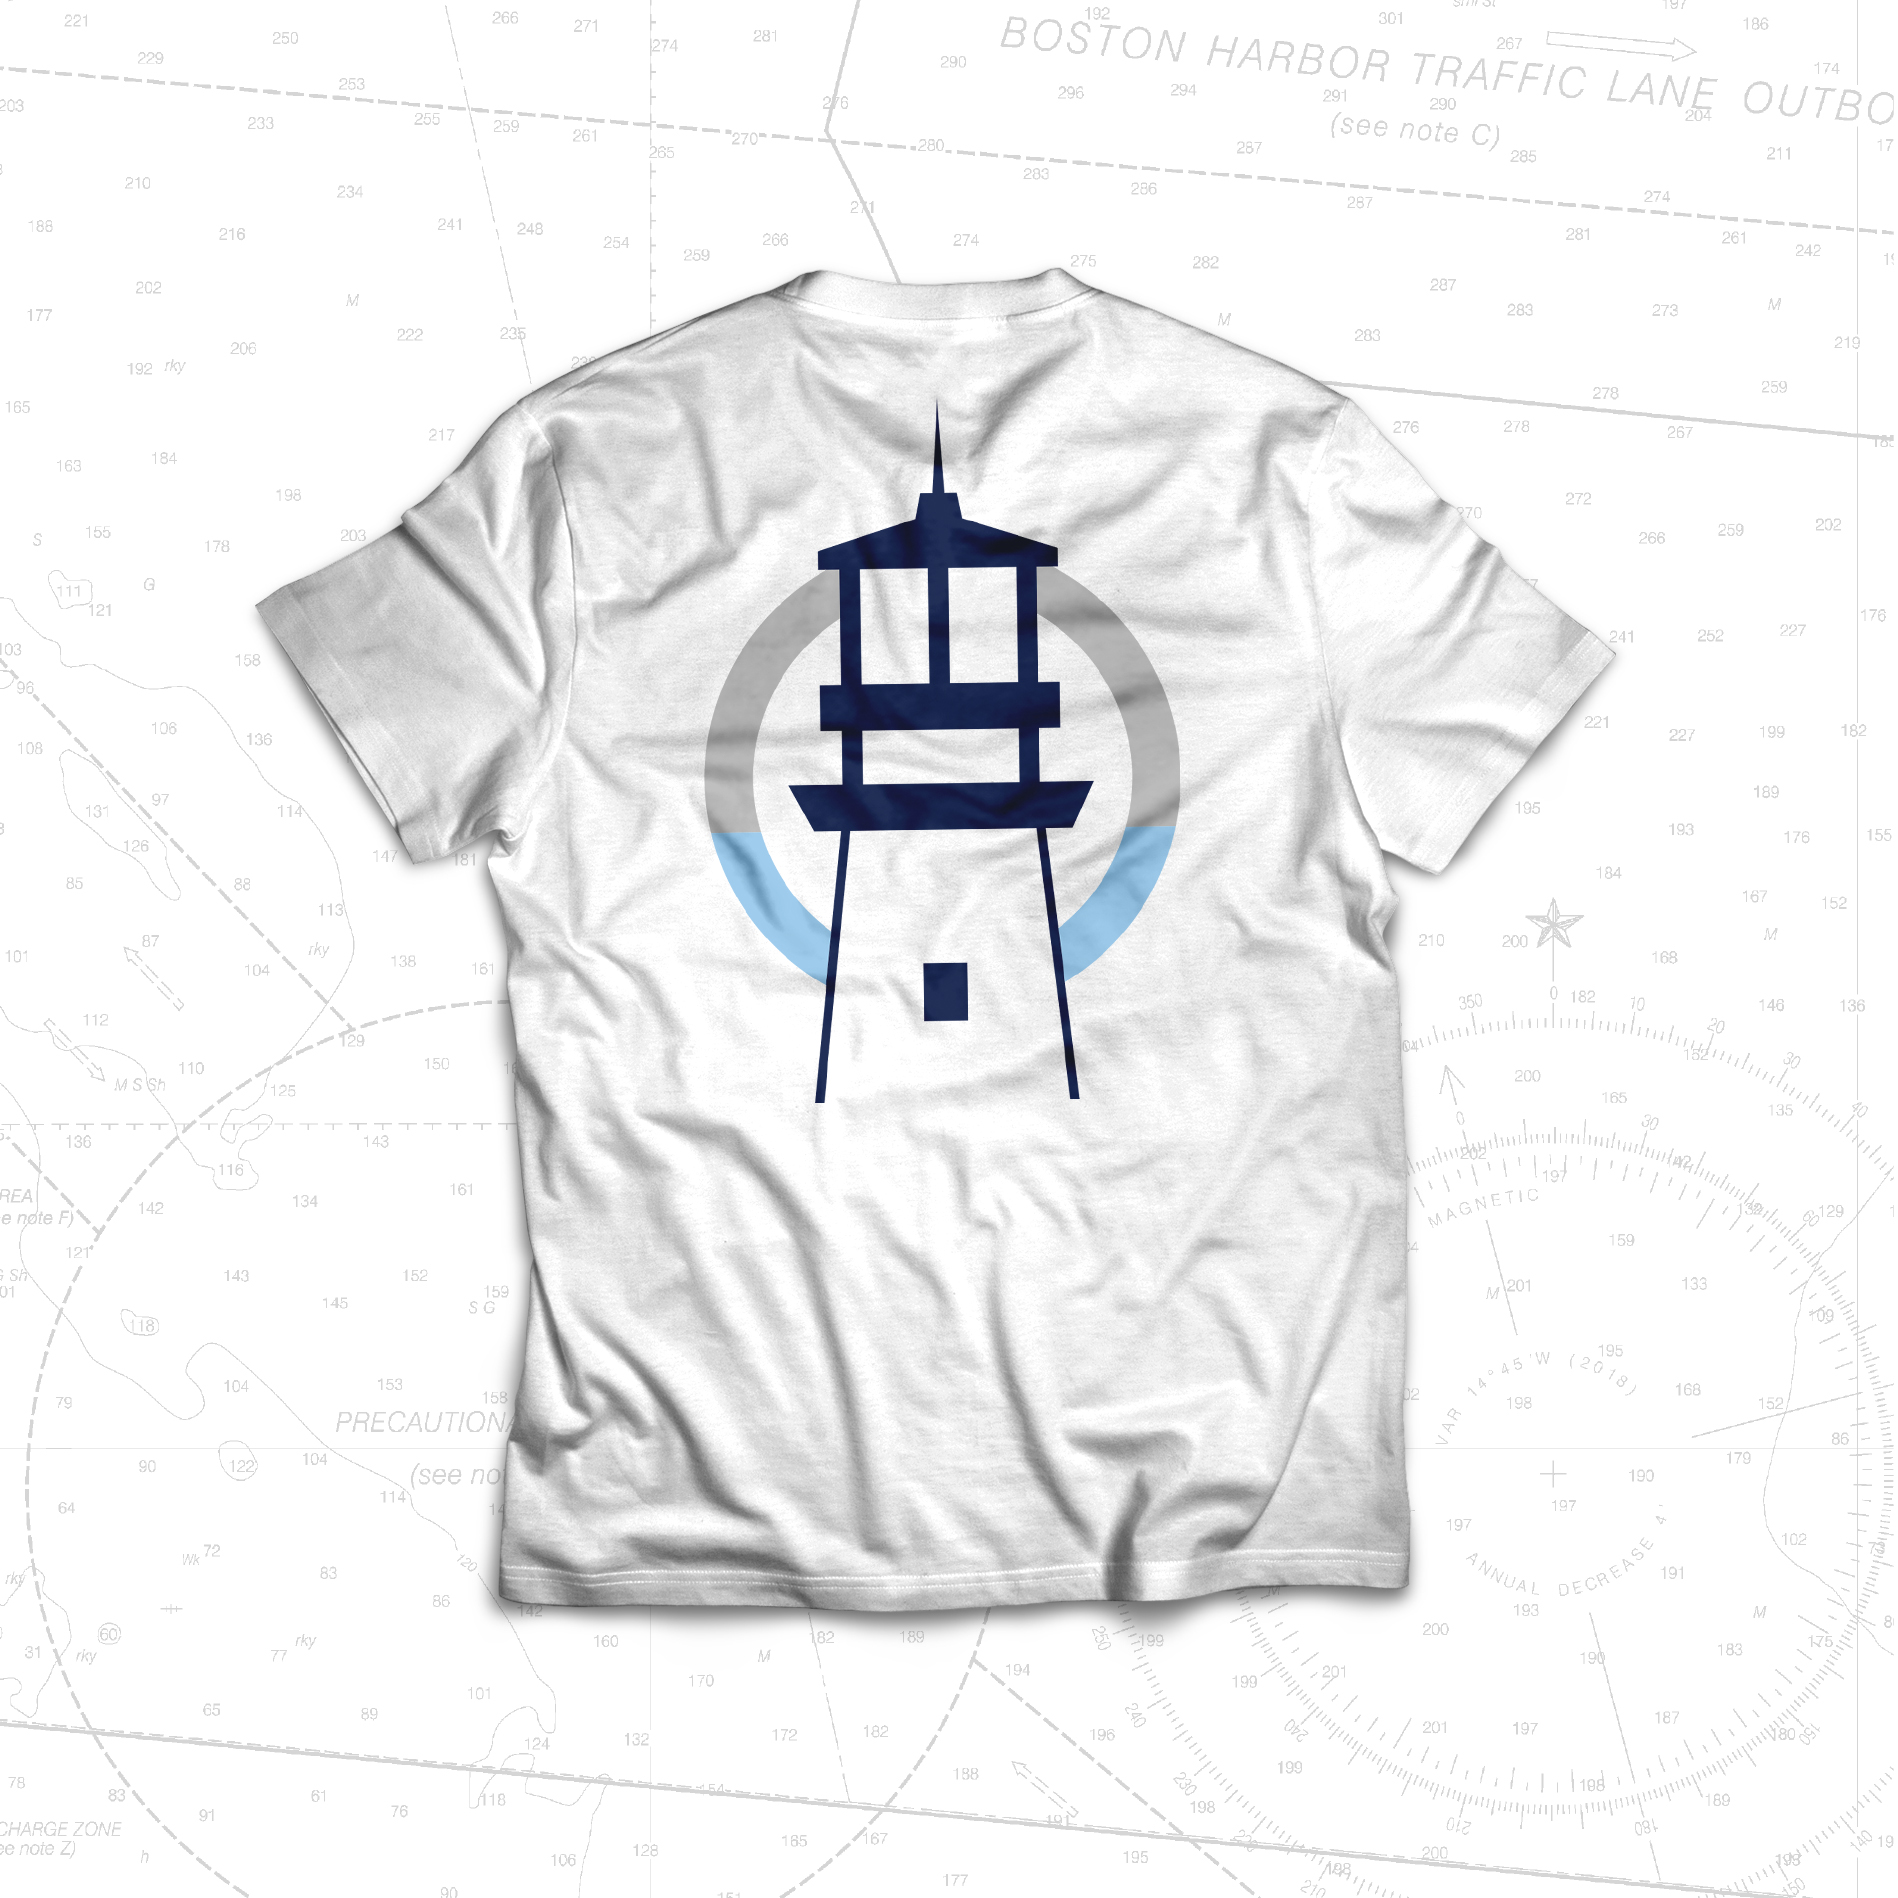 BYS_tshirt mock up